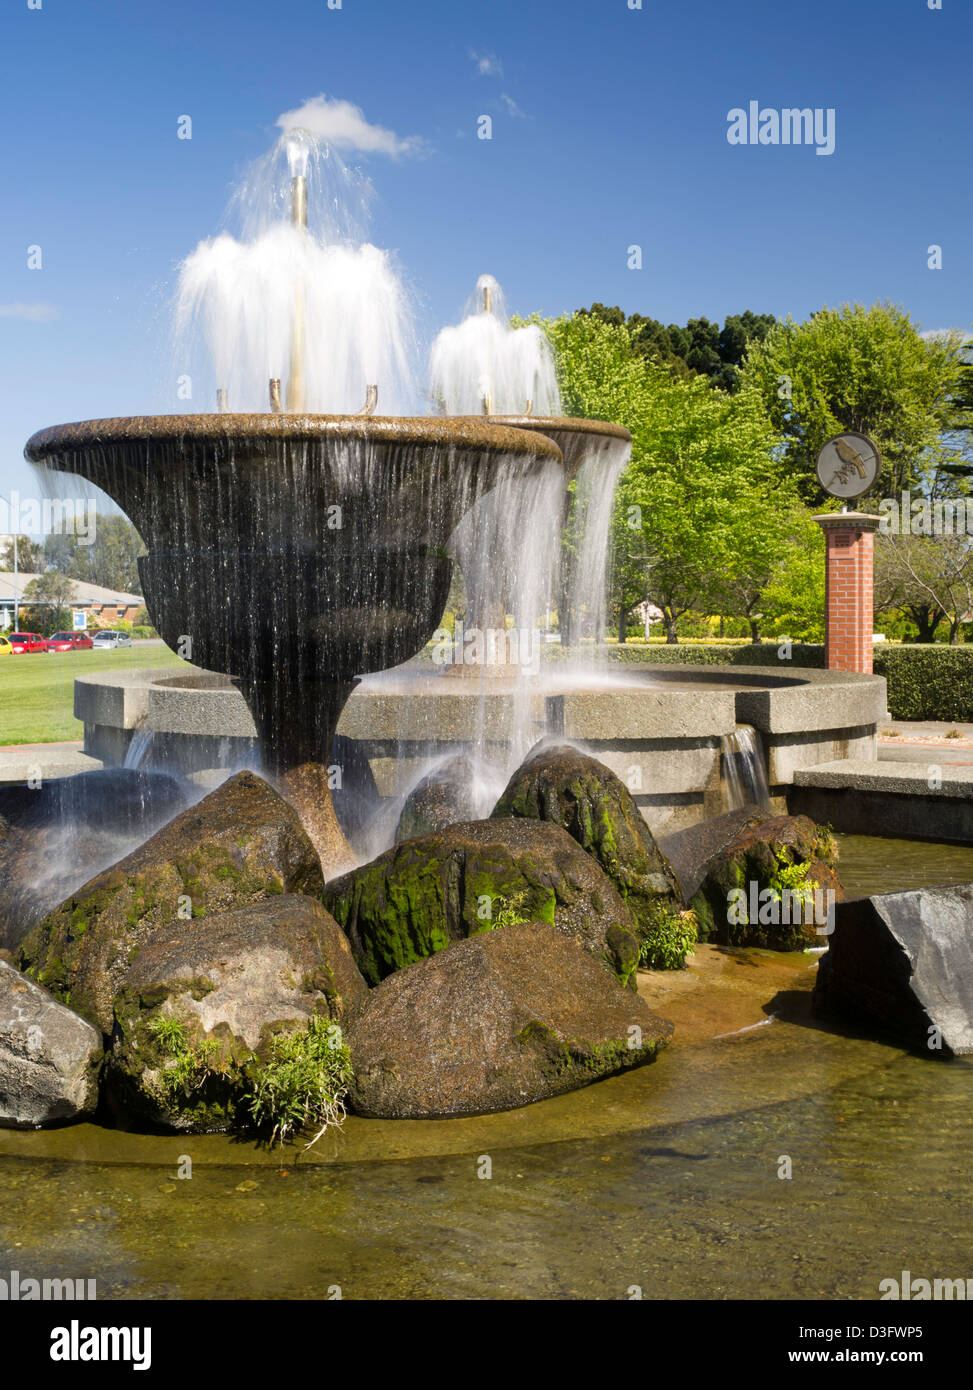 Water fountains outdoor new zealand -